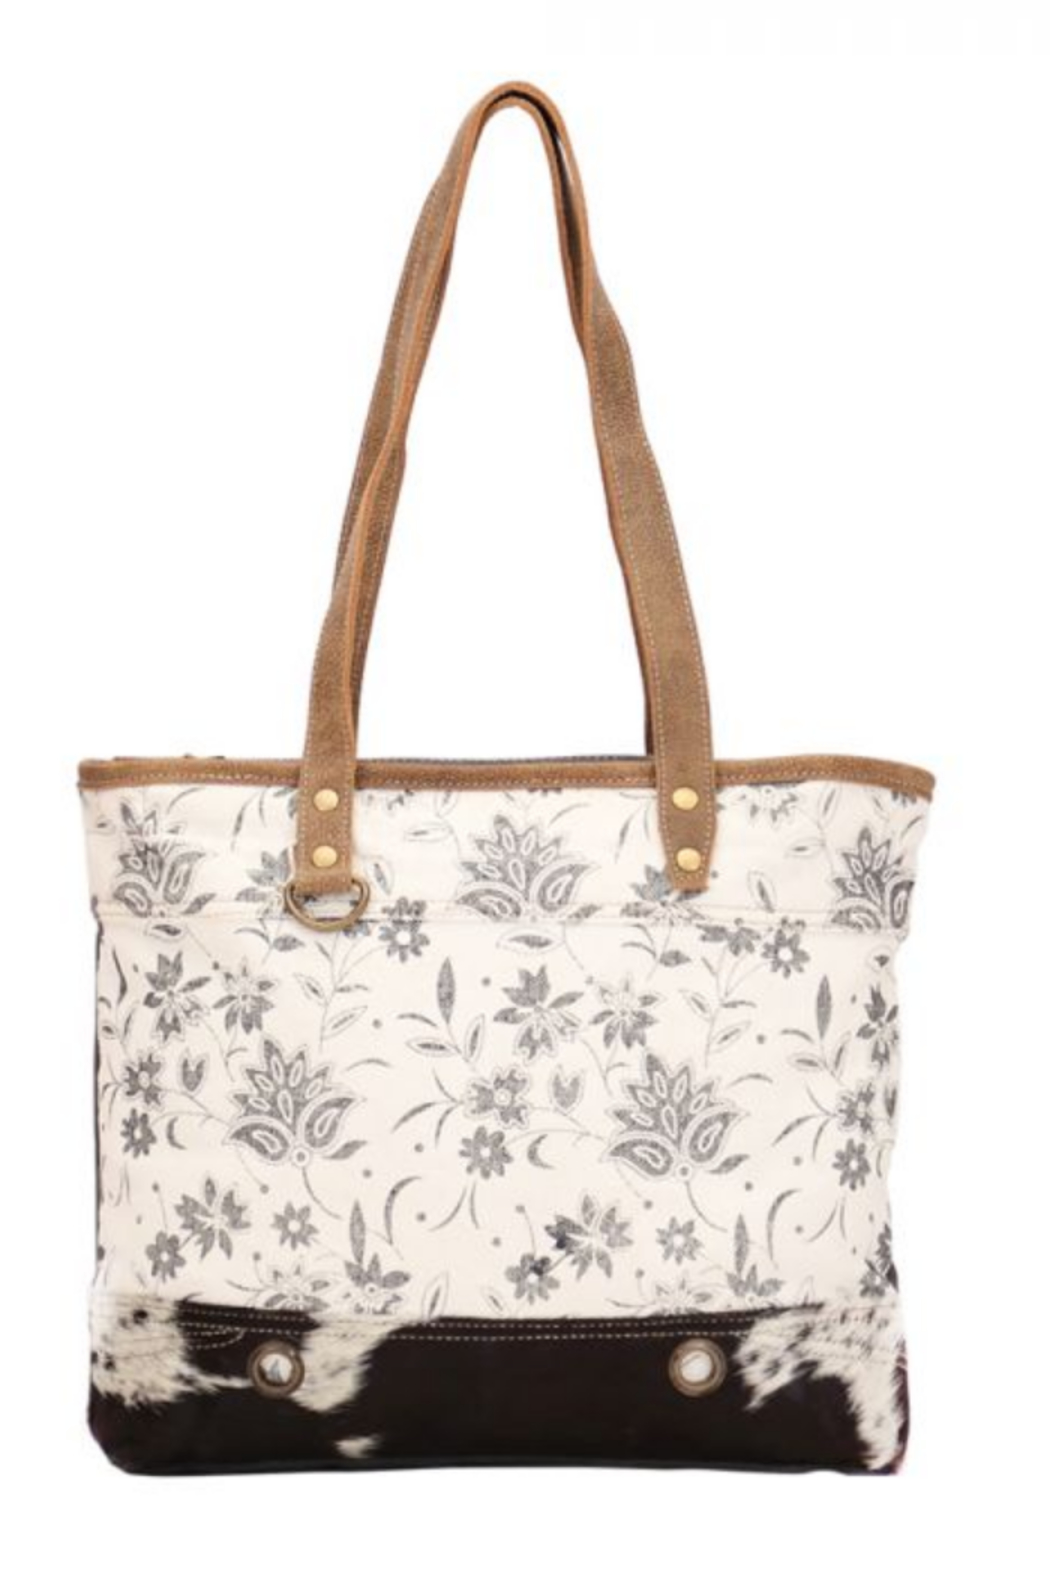 Myra Bag s Allium Tote S-1494 - Front Cropped Image